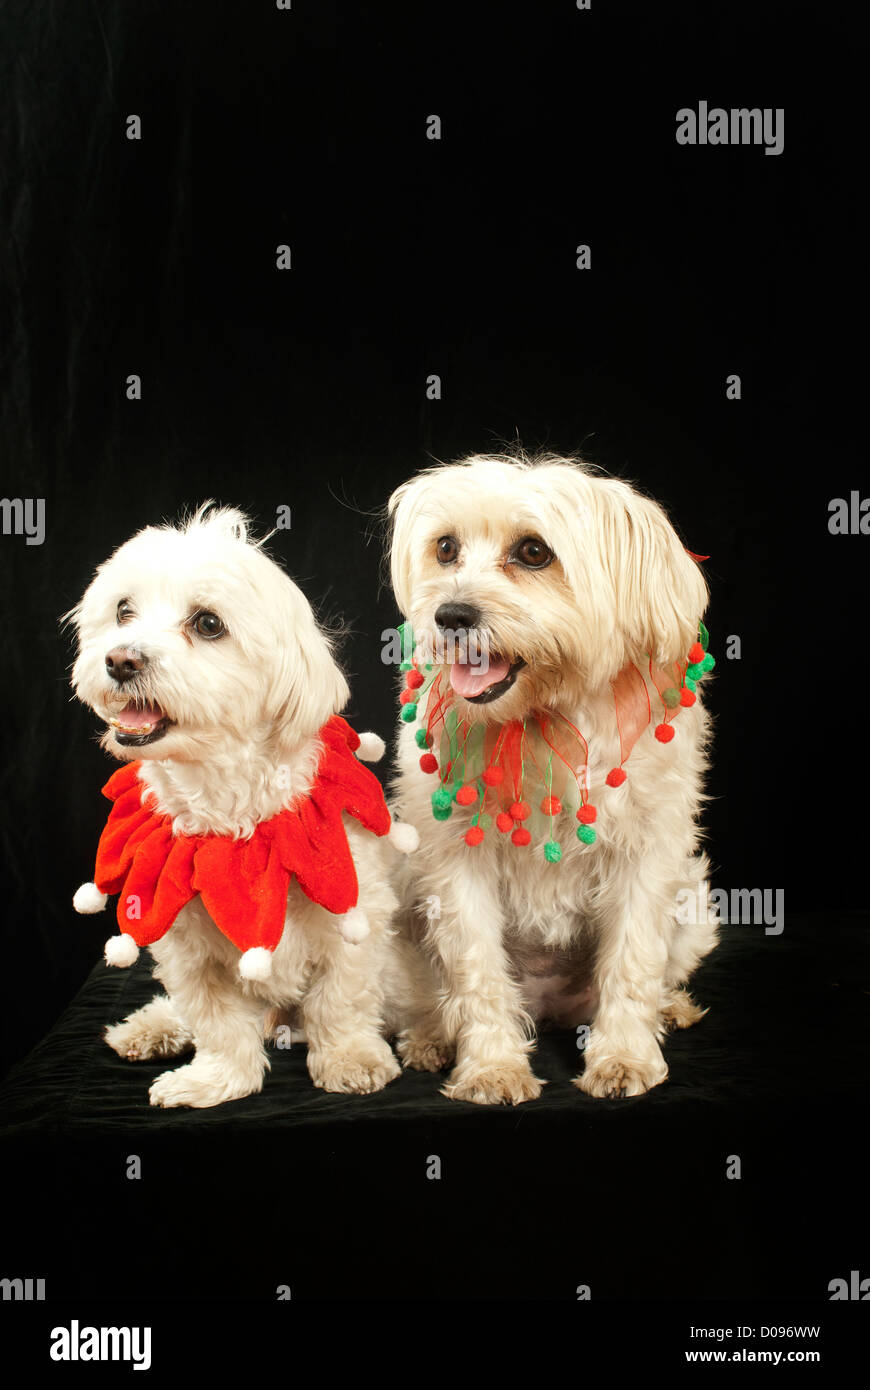 two small dogs with chrismas scarf, small, cute, adorable, - Stock Image